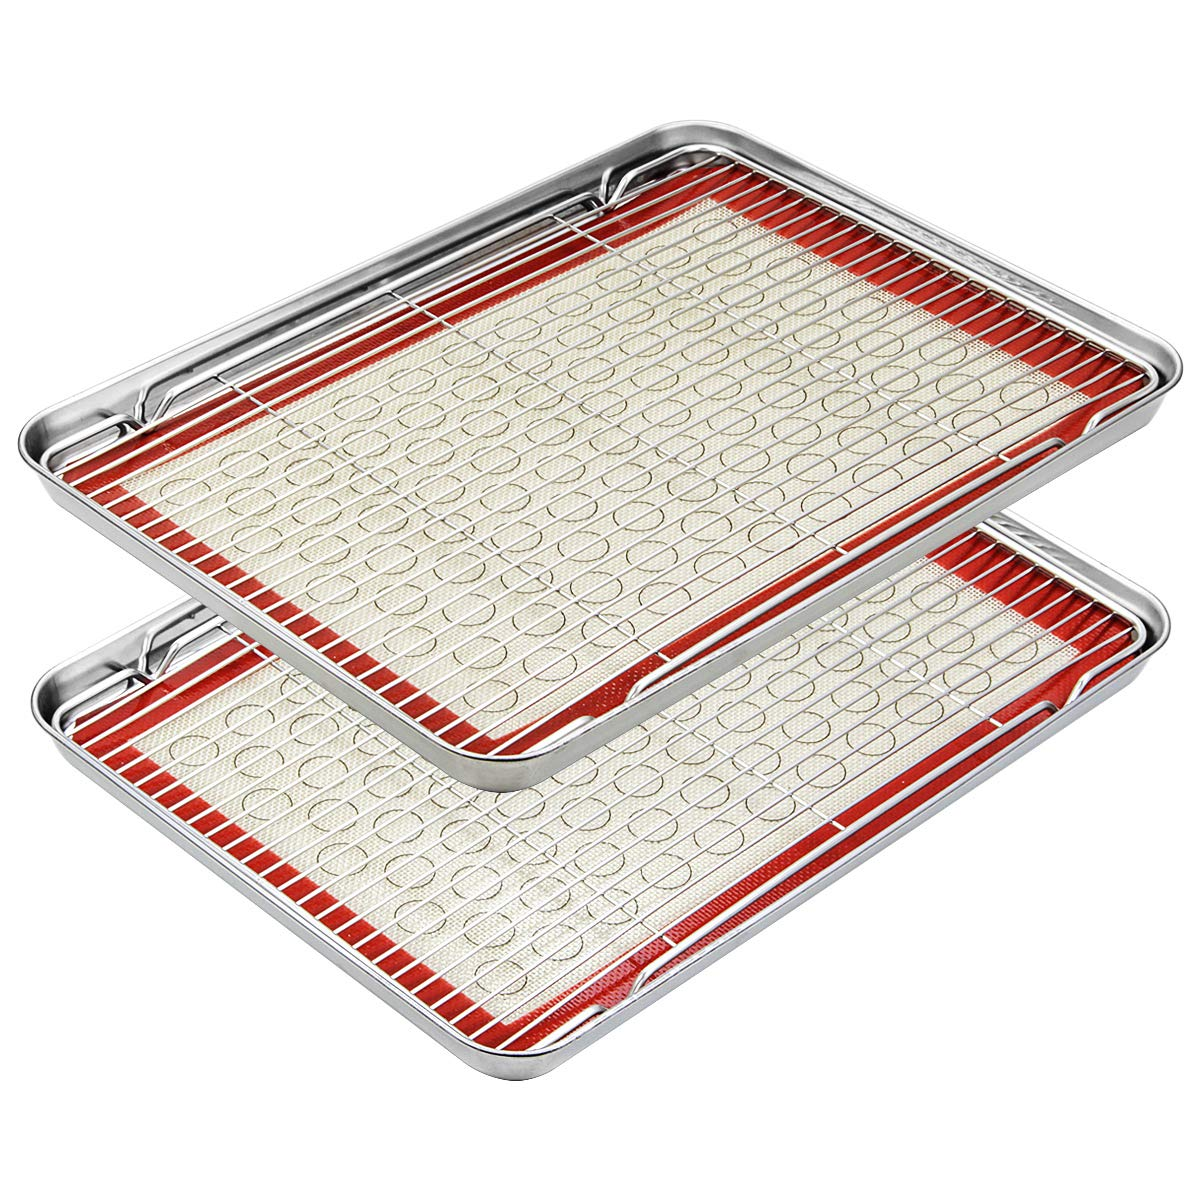 Footek Baking Sheets, Rack Set & Silicone Baking Mats, Stainless Steel Baking Pans Rectangle 16'' L×12'' W×1'' H, Non Toxic & Healthy, Mirror Polish & Easy Clean, Pack of 6 (2 Sheets + 2 Racks + 2 Mats)